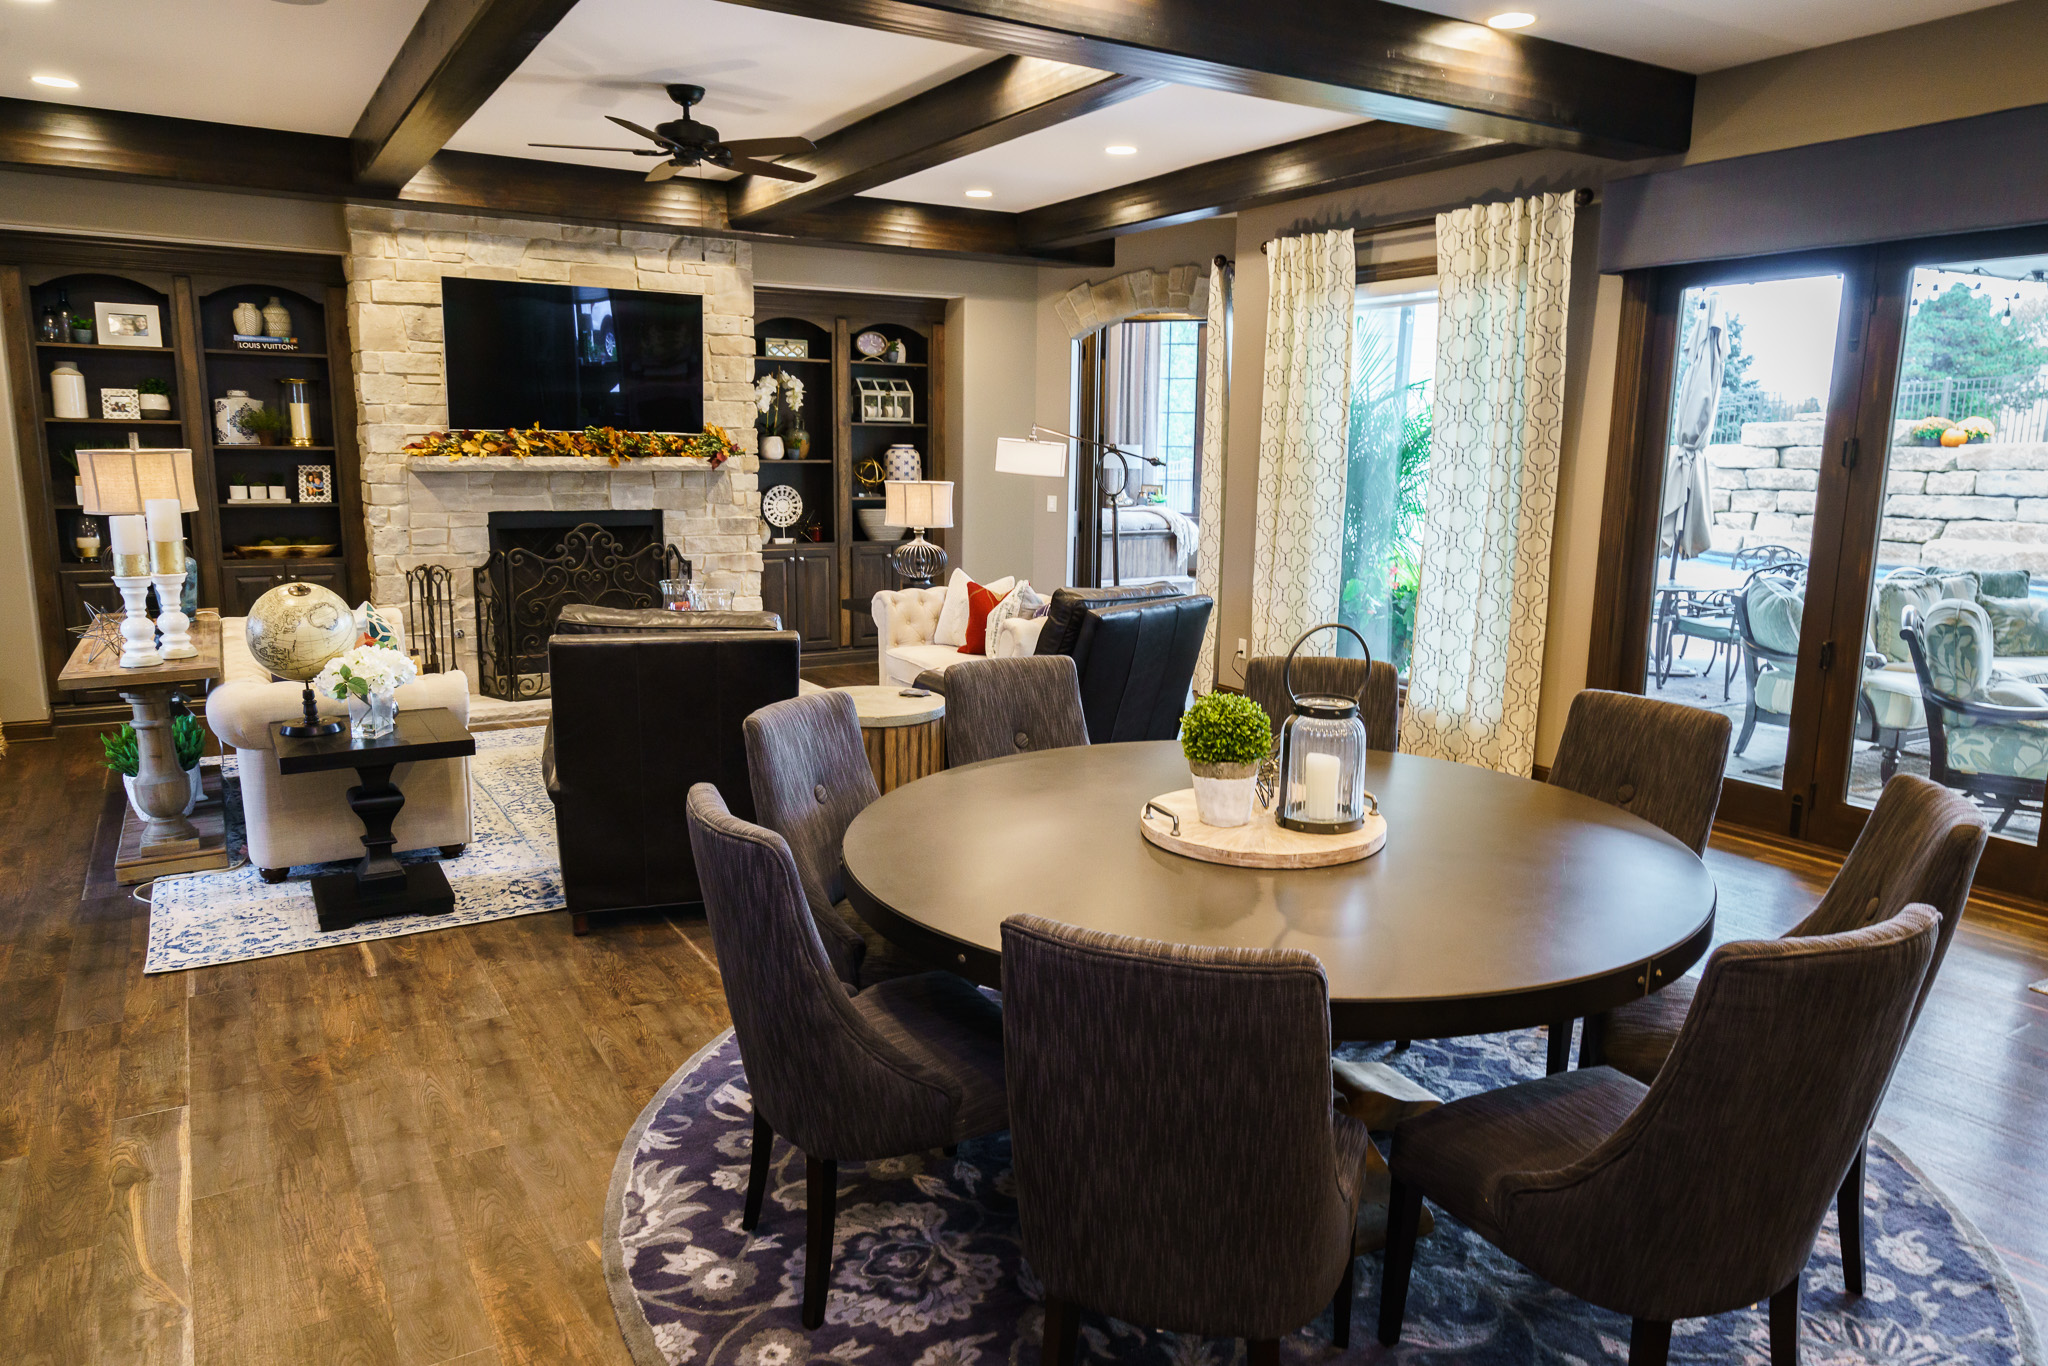 Fluff Interior Design To Quote Our Clientu2026let Fluff U201cTake The Street Of  Dreams Omaha Interior Design Designer To Quote Our Client Let Fluff Take  The Stress ...